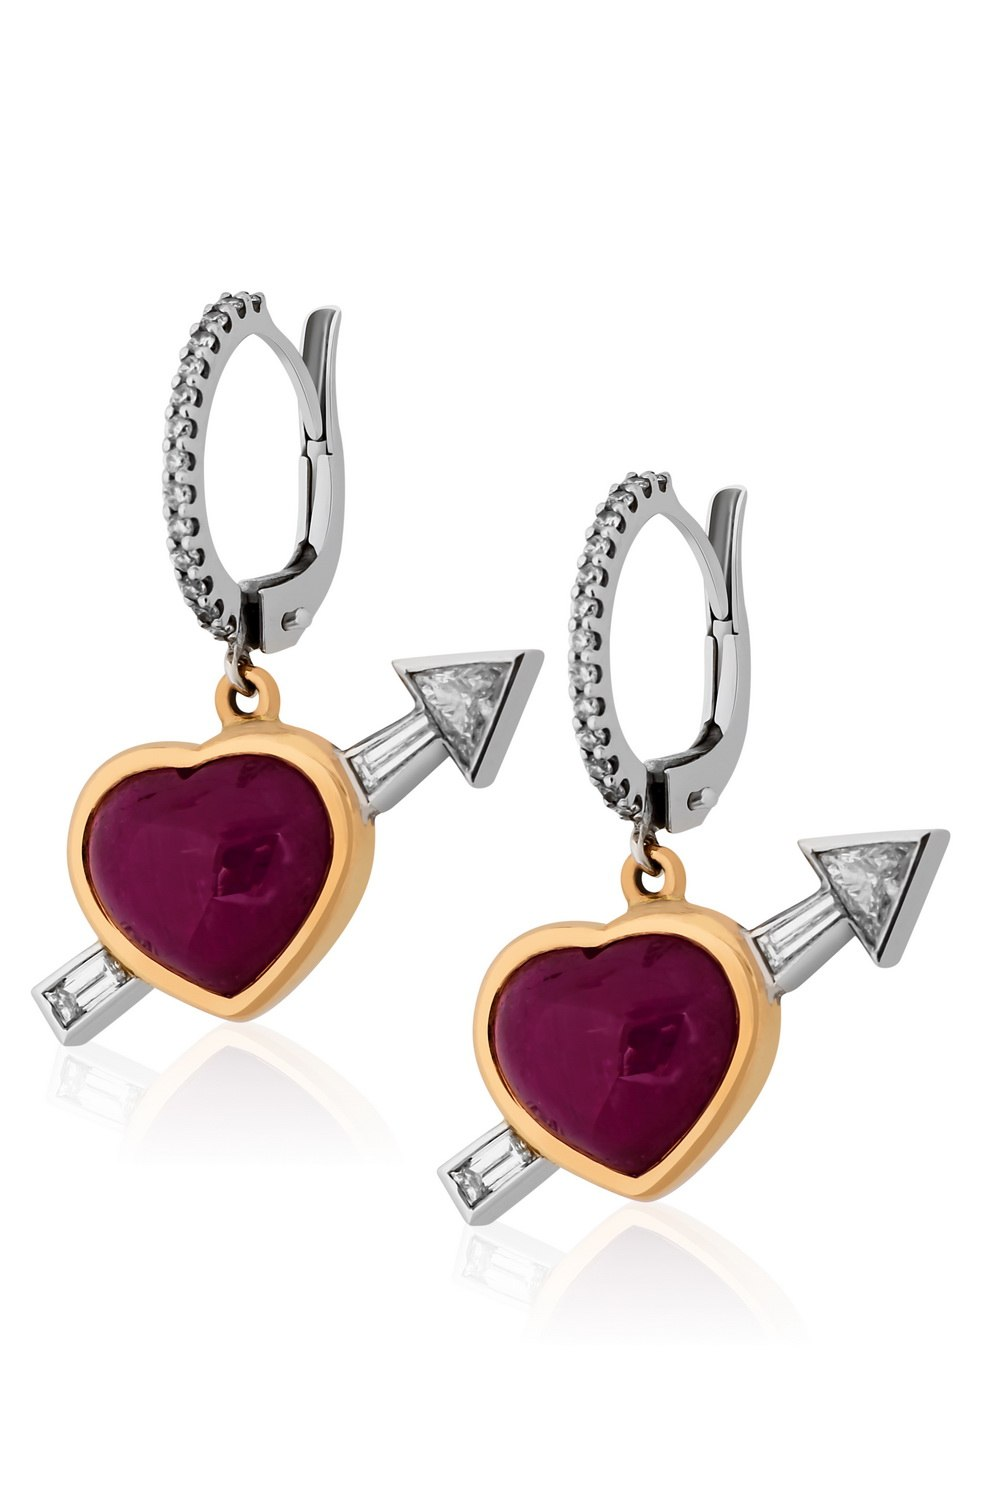 KESSARIS Heart Ruby Earrings M3325